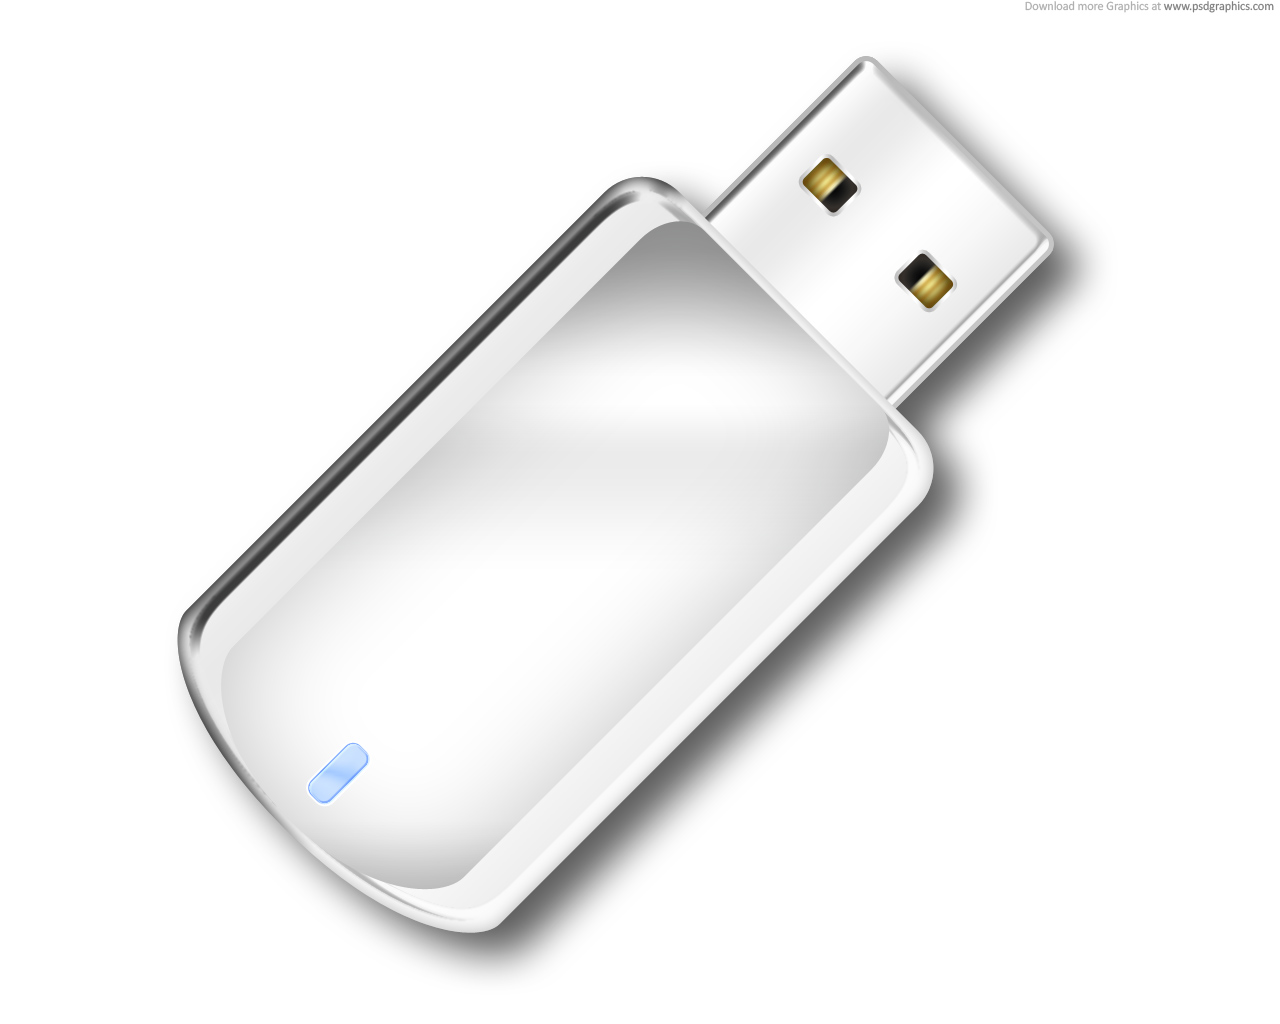 http://www.psdgraphics.com/file/usb-flash-drive-icon.jpg